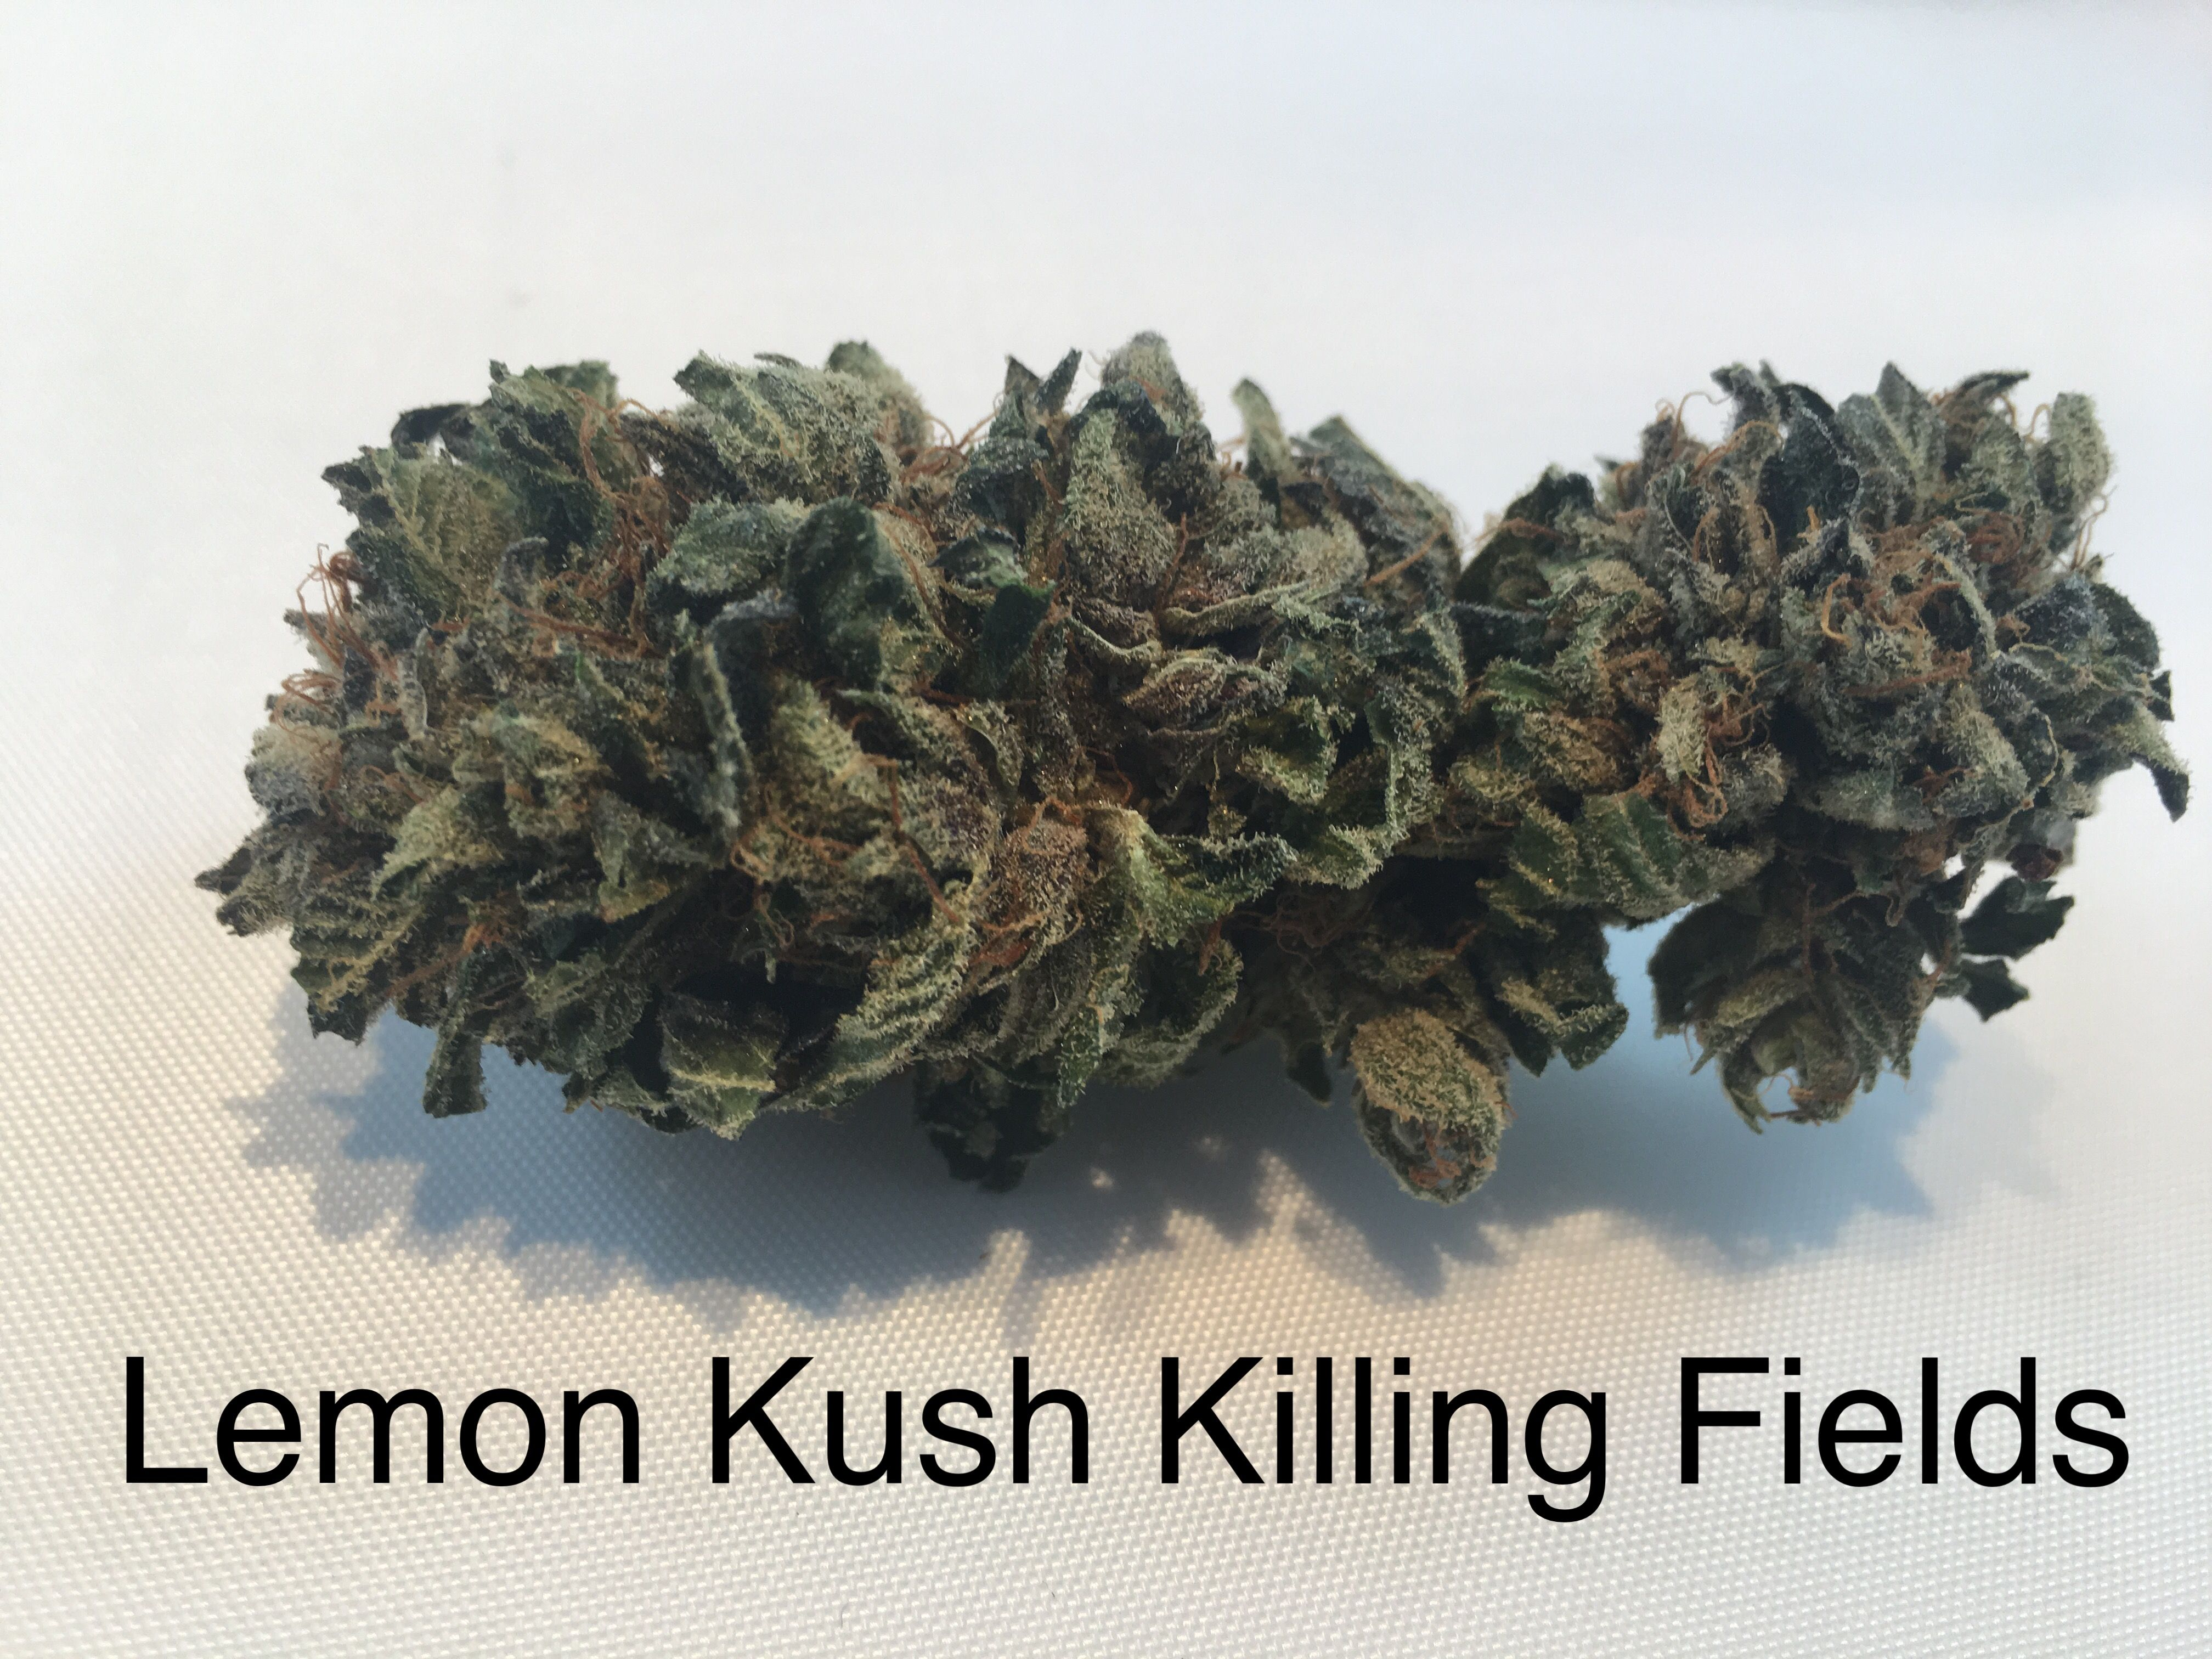 Lemon Kush Killing Fields